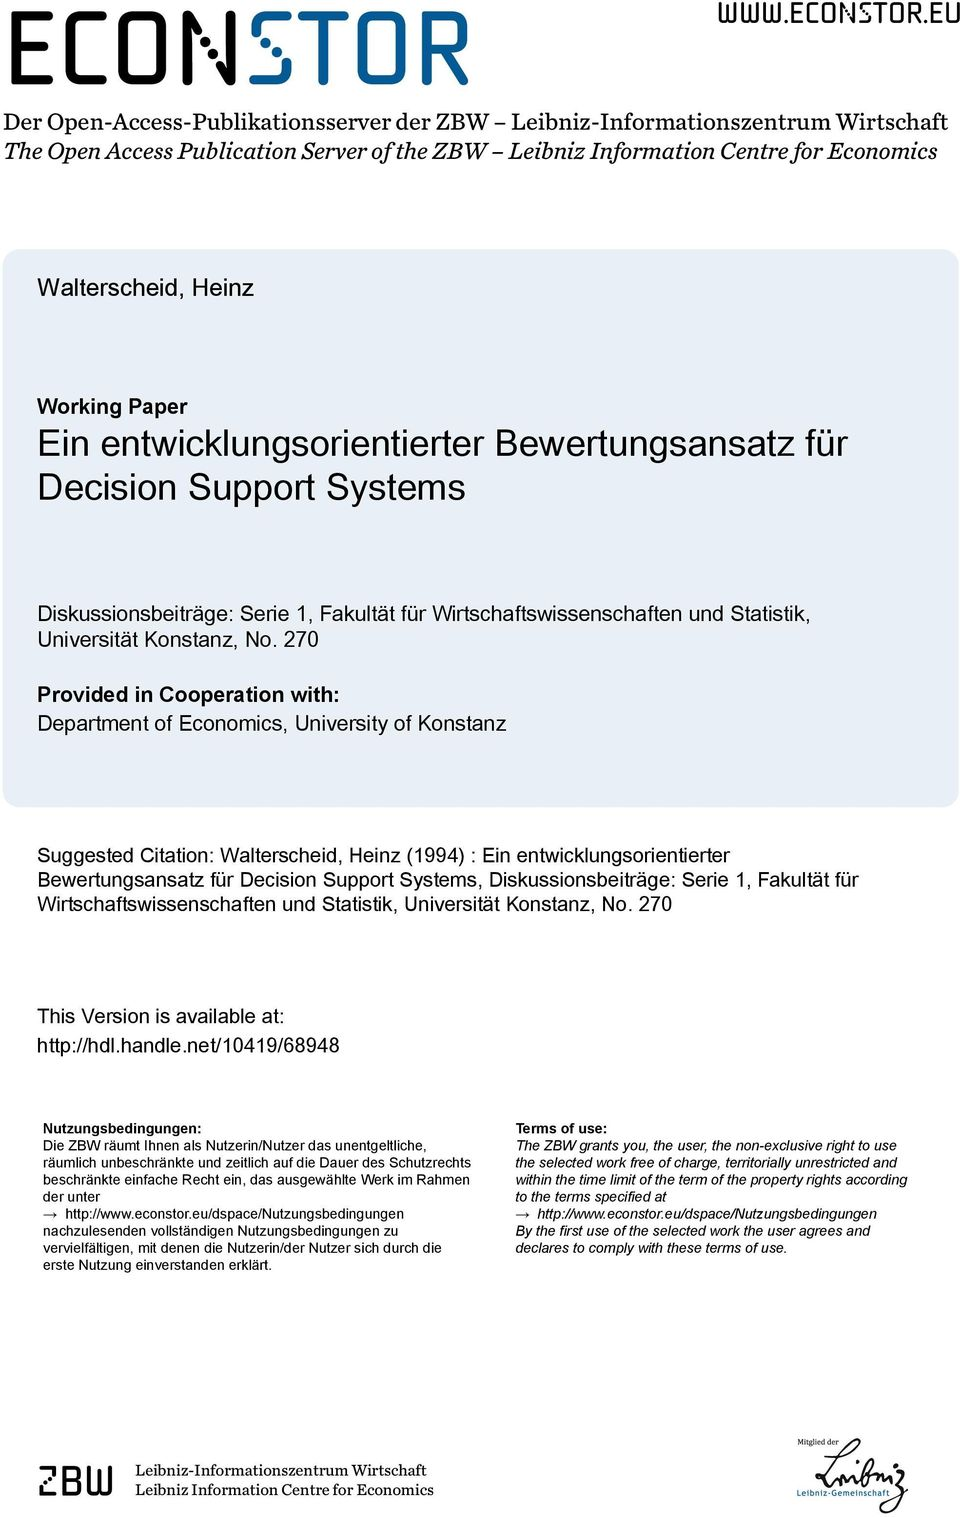 eu Der Open-Access-Publikationsserver der ZBW Leibniz-Informationszentrum Wirtschaft The Open Access Publication Server of the ZBW Leibniz Information Centre for Economics Walterscheid, Heinz Working